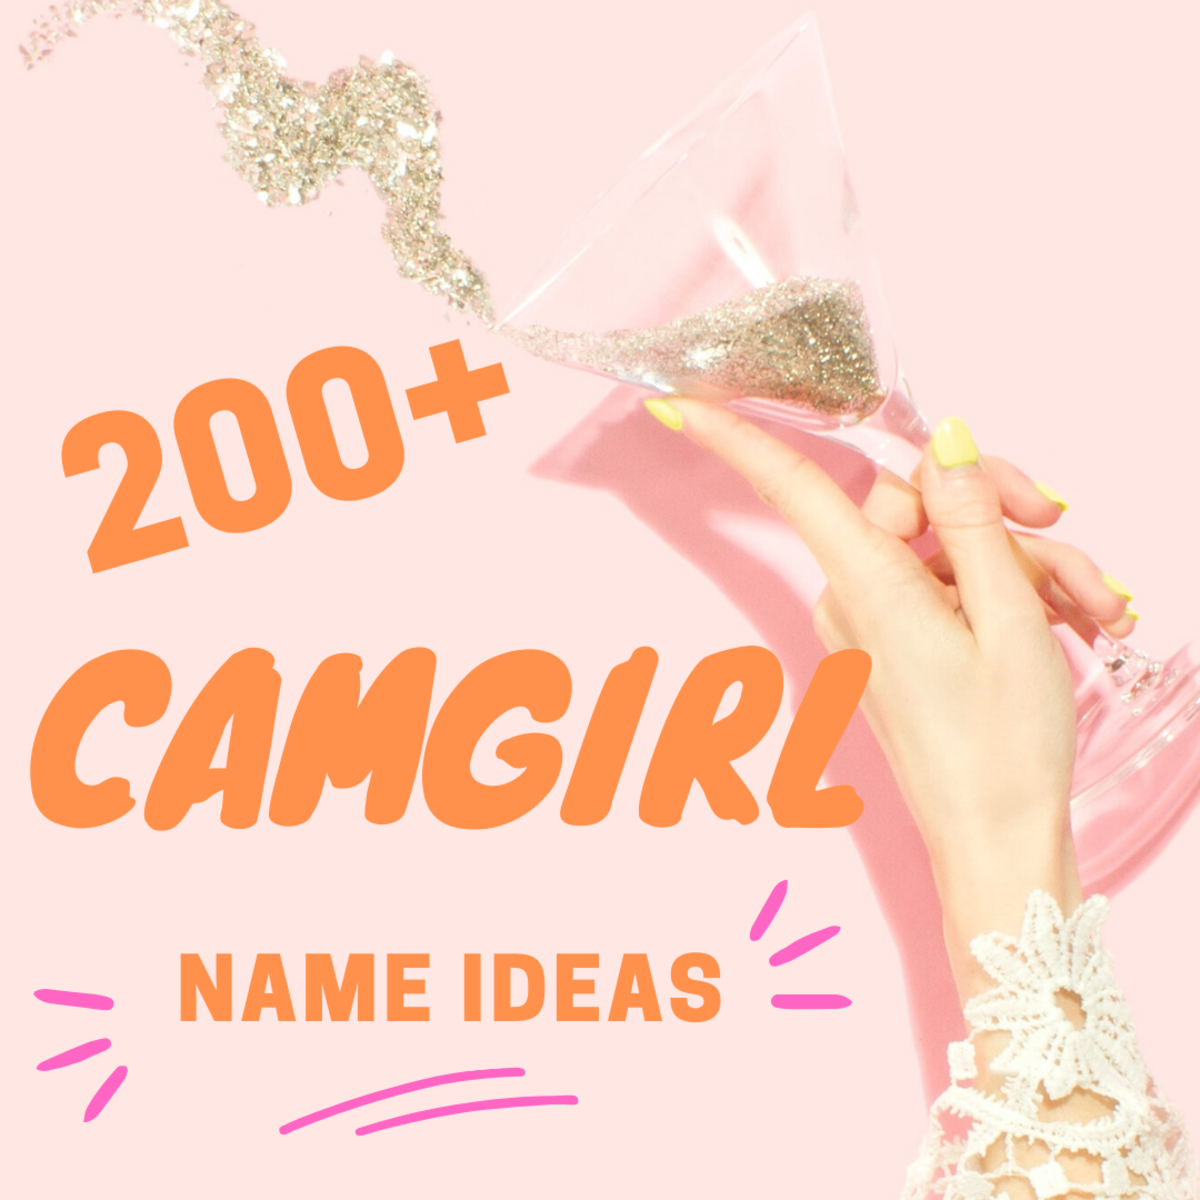 Camgirl Name Ideas to Get You Noticed